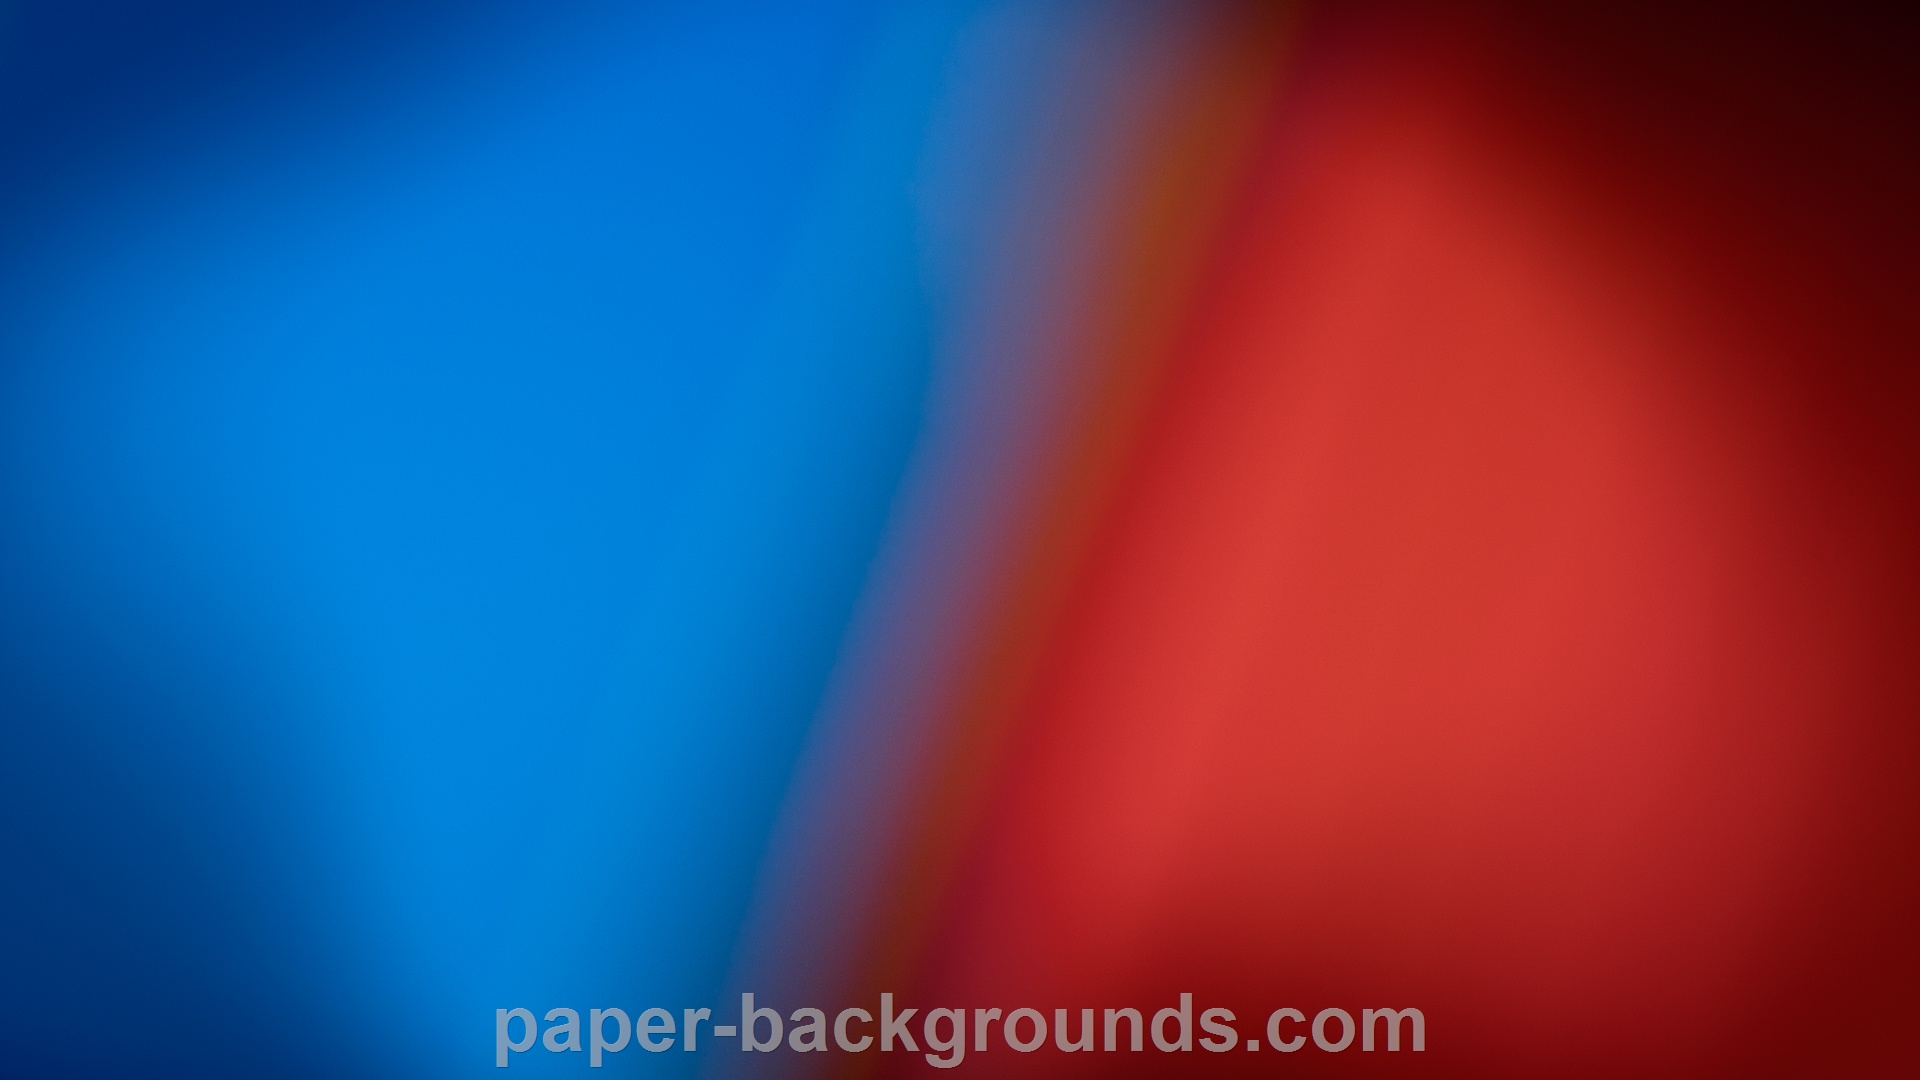 Paper Backgrounds | red-blue-background-abstract-wallpaper-hd